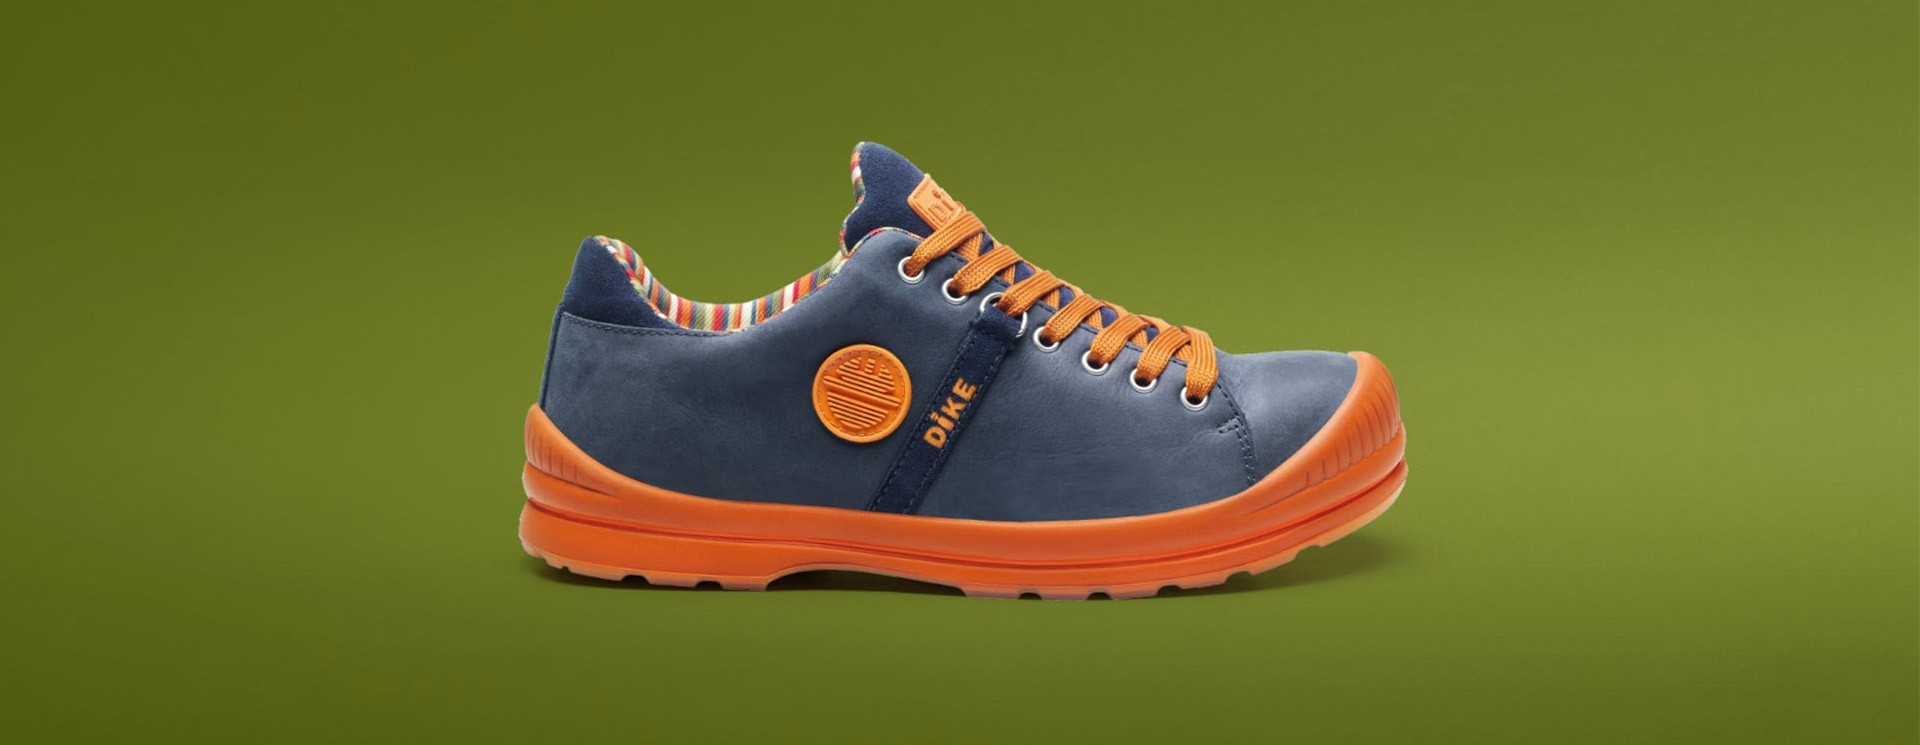 Summit: Resistant Safety Shoes and Work Boots | Dike